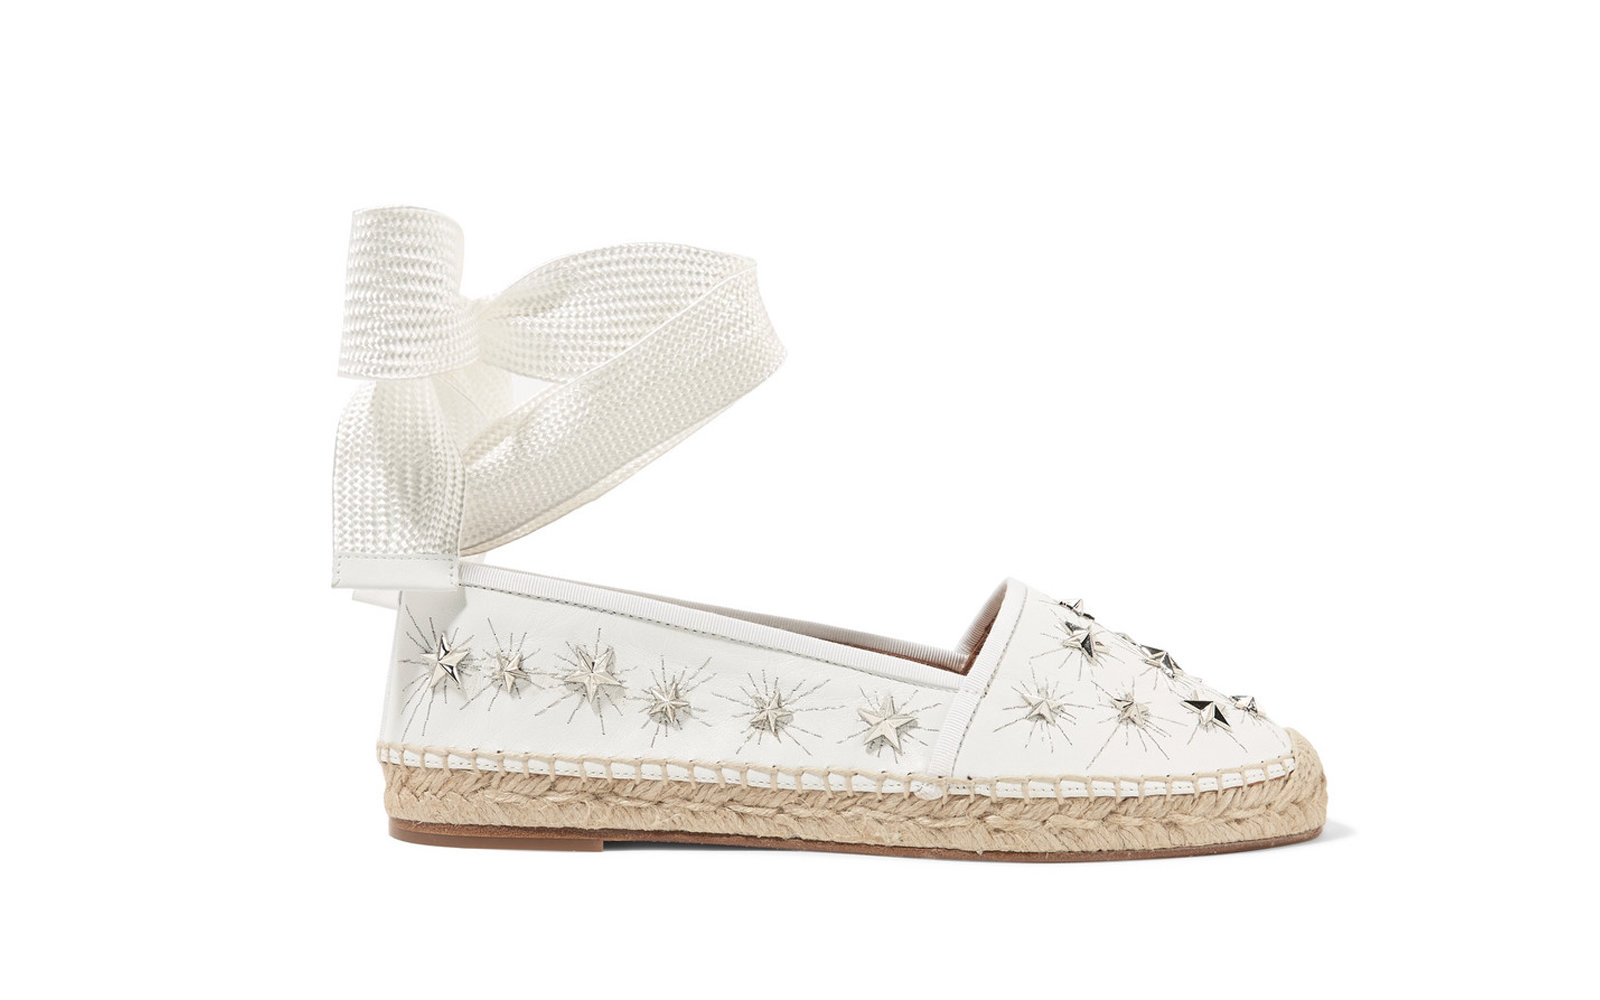 0f5bbdcf66ad Aquazurra Cosmic Stars embellished leather espadrilles